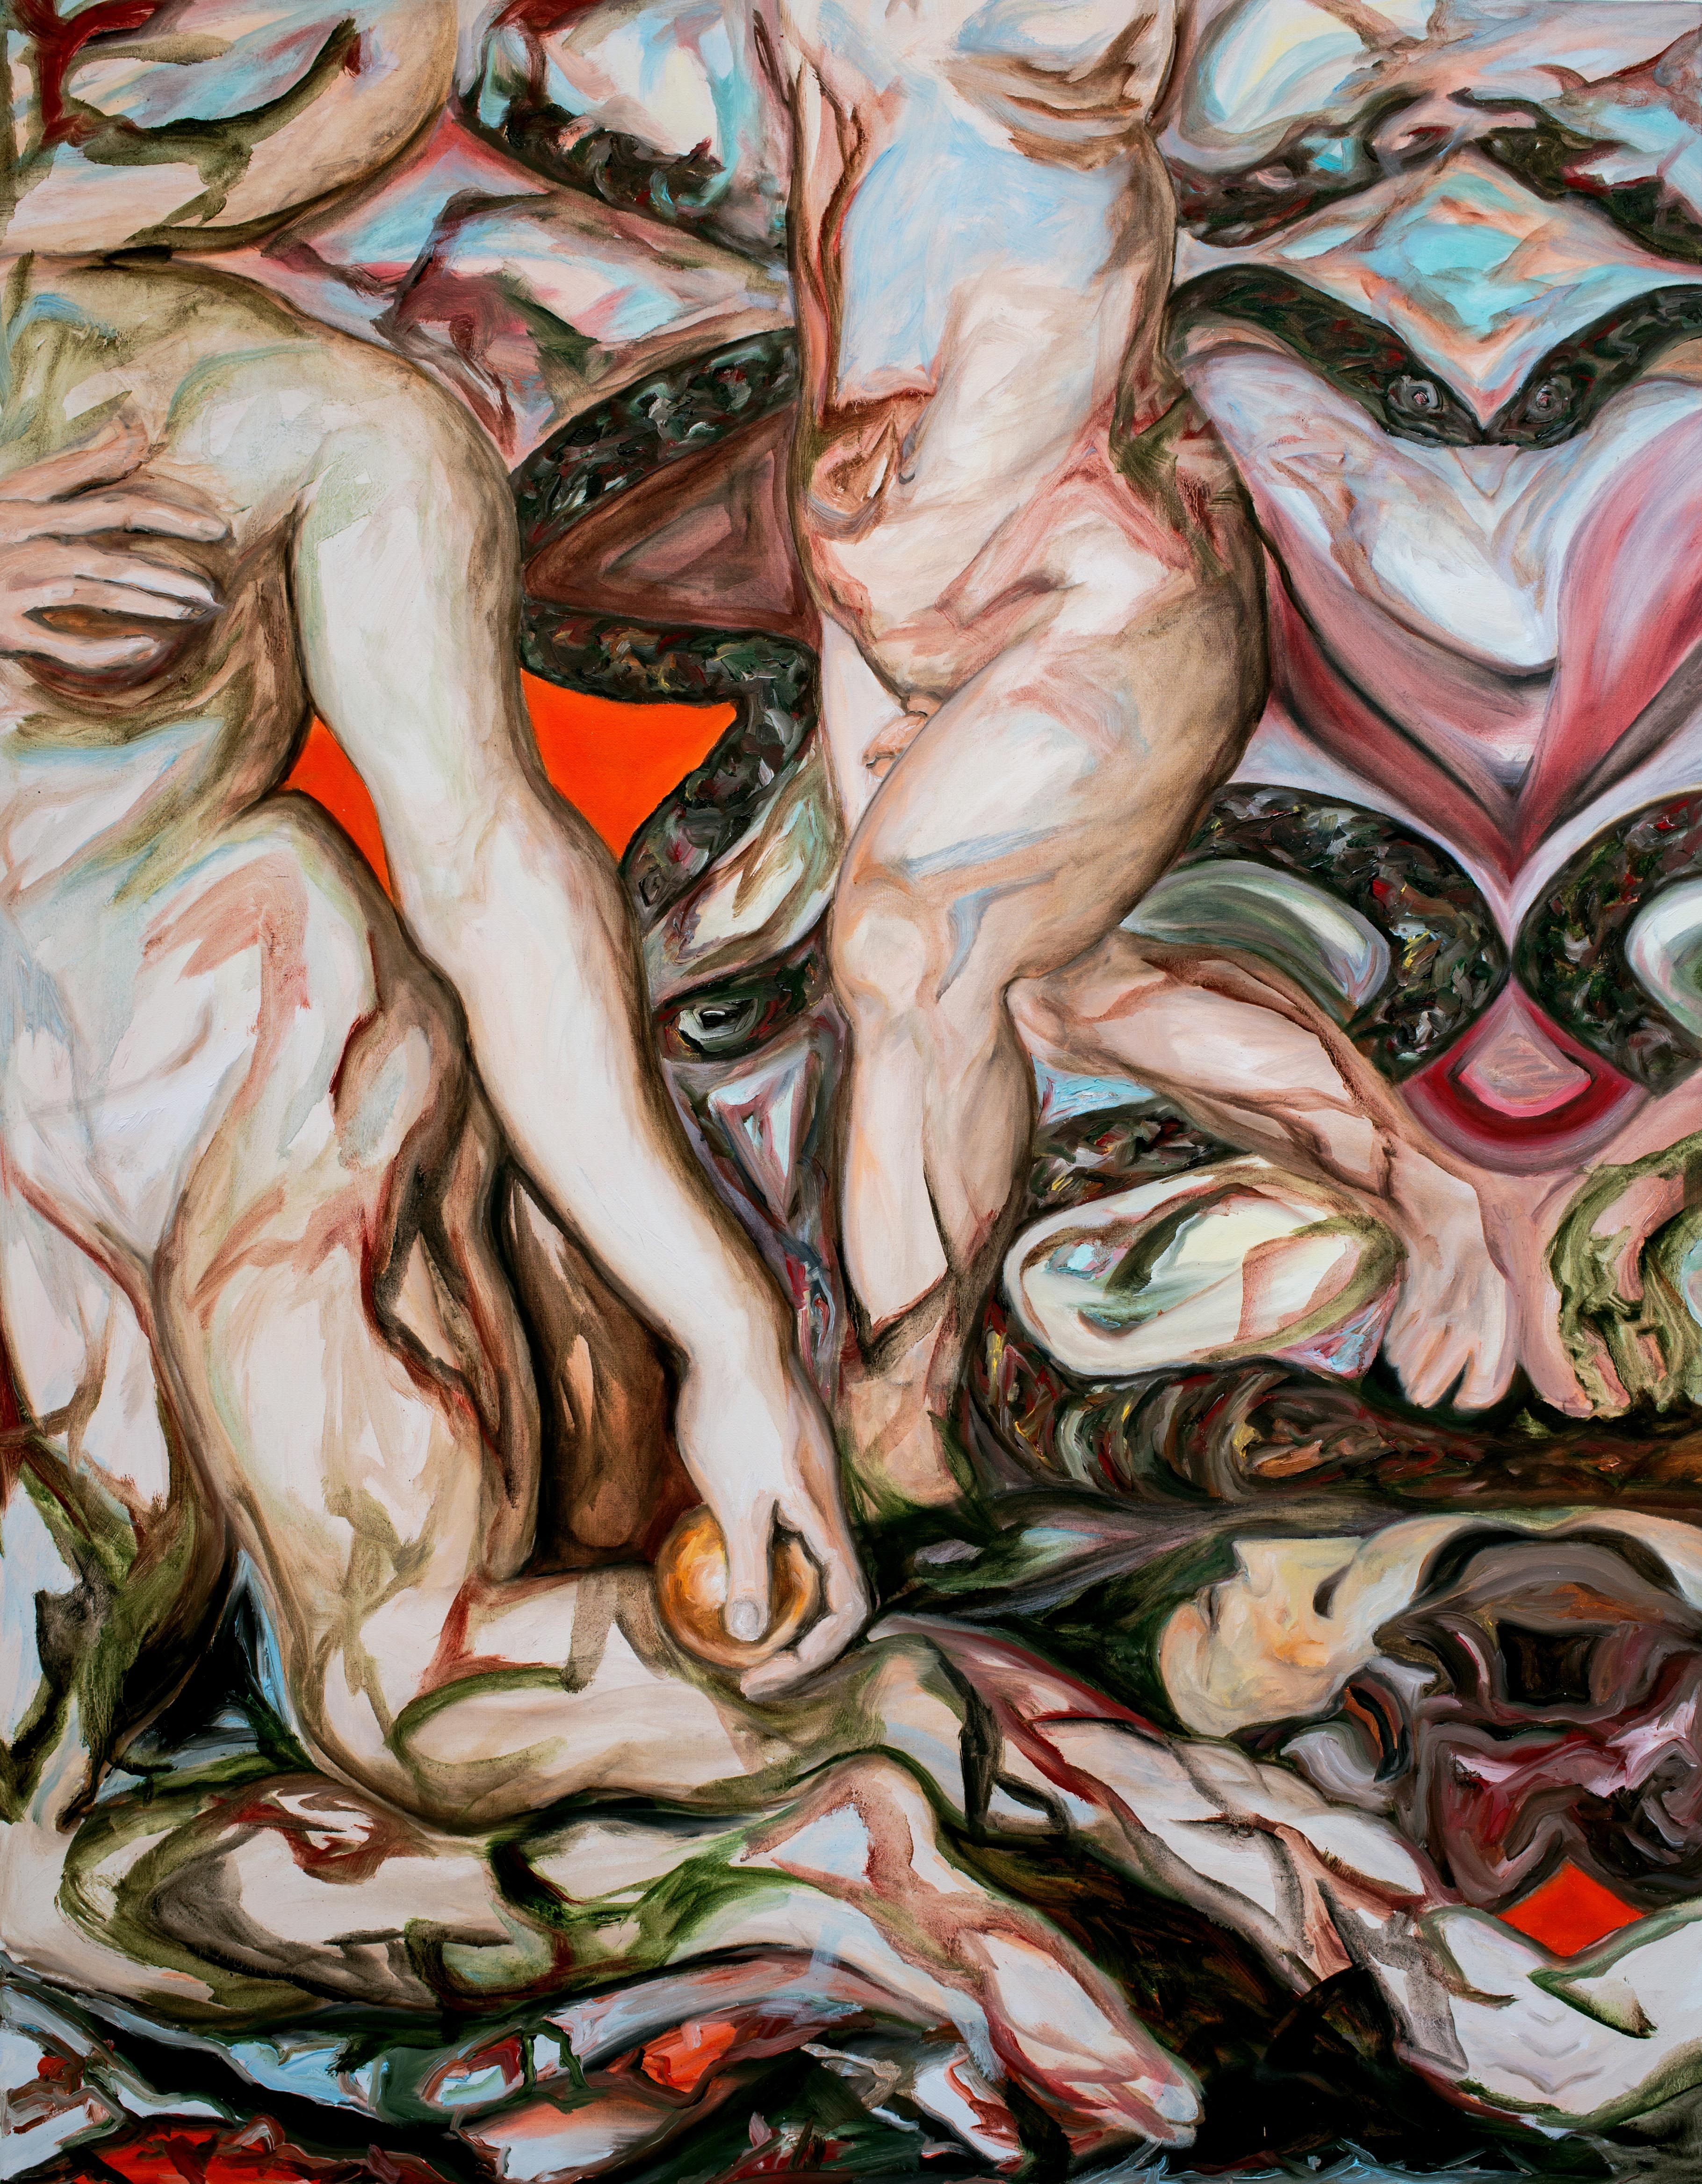 Multiple different naked bodies against a red background.